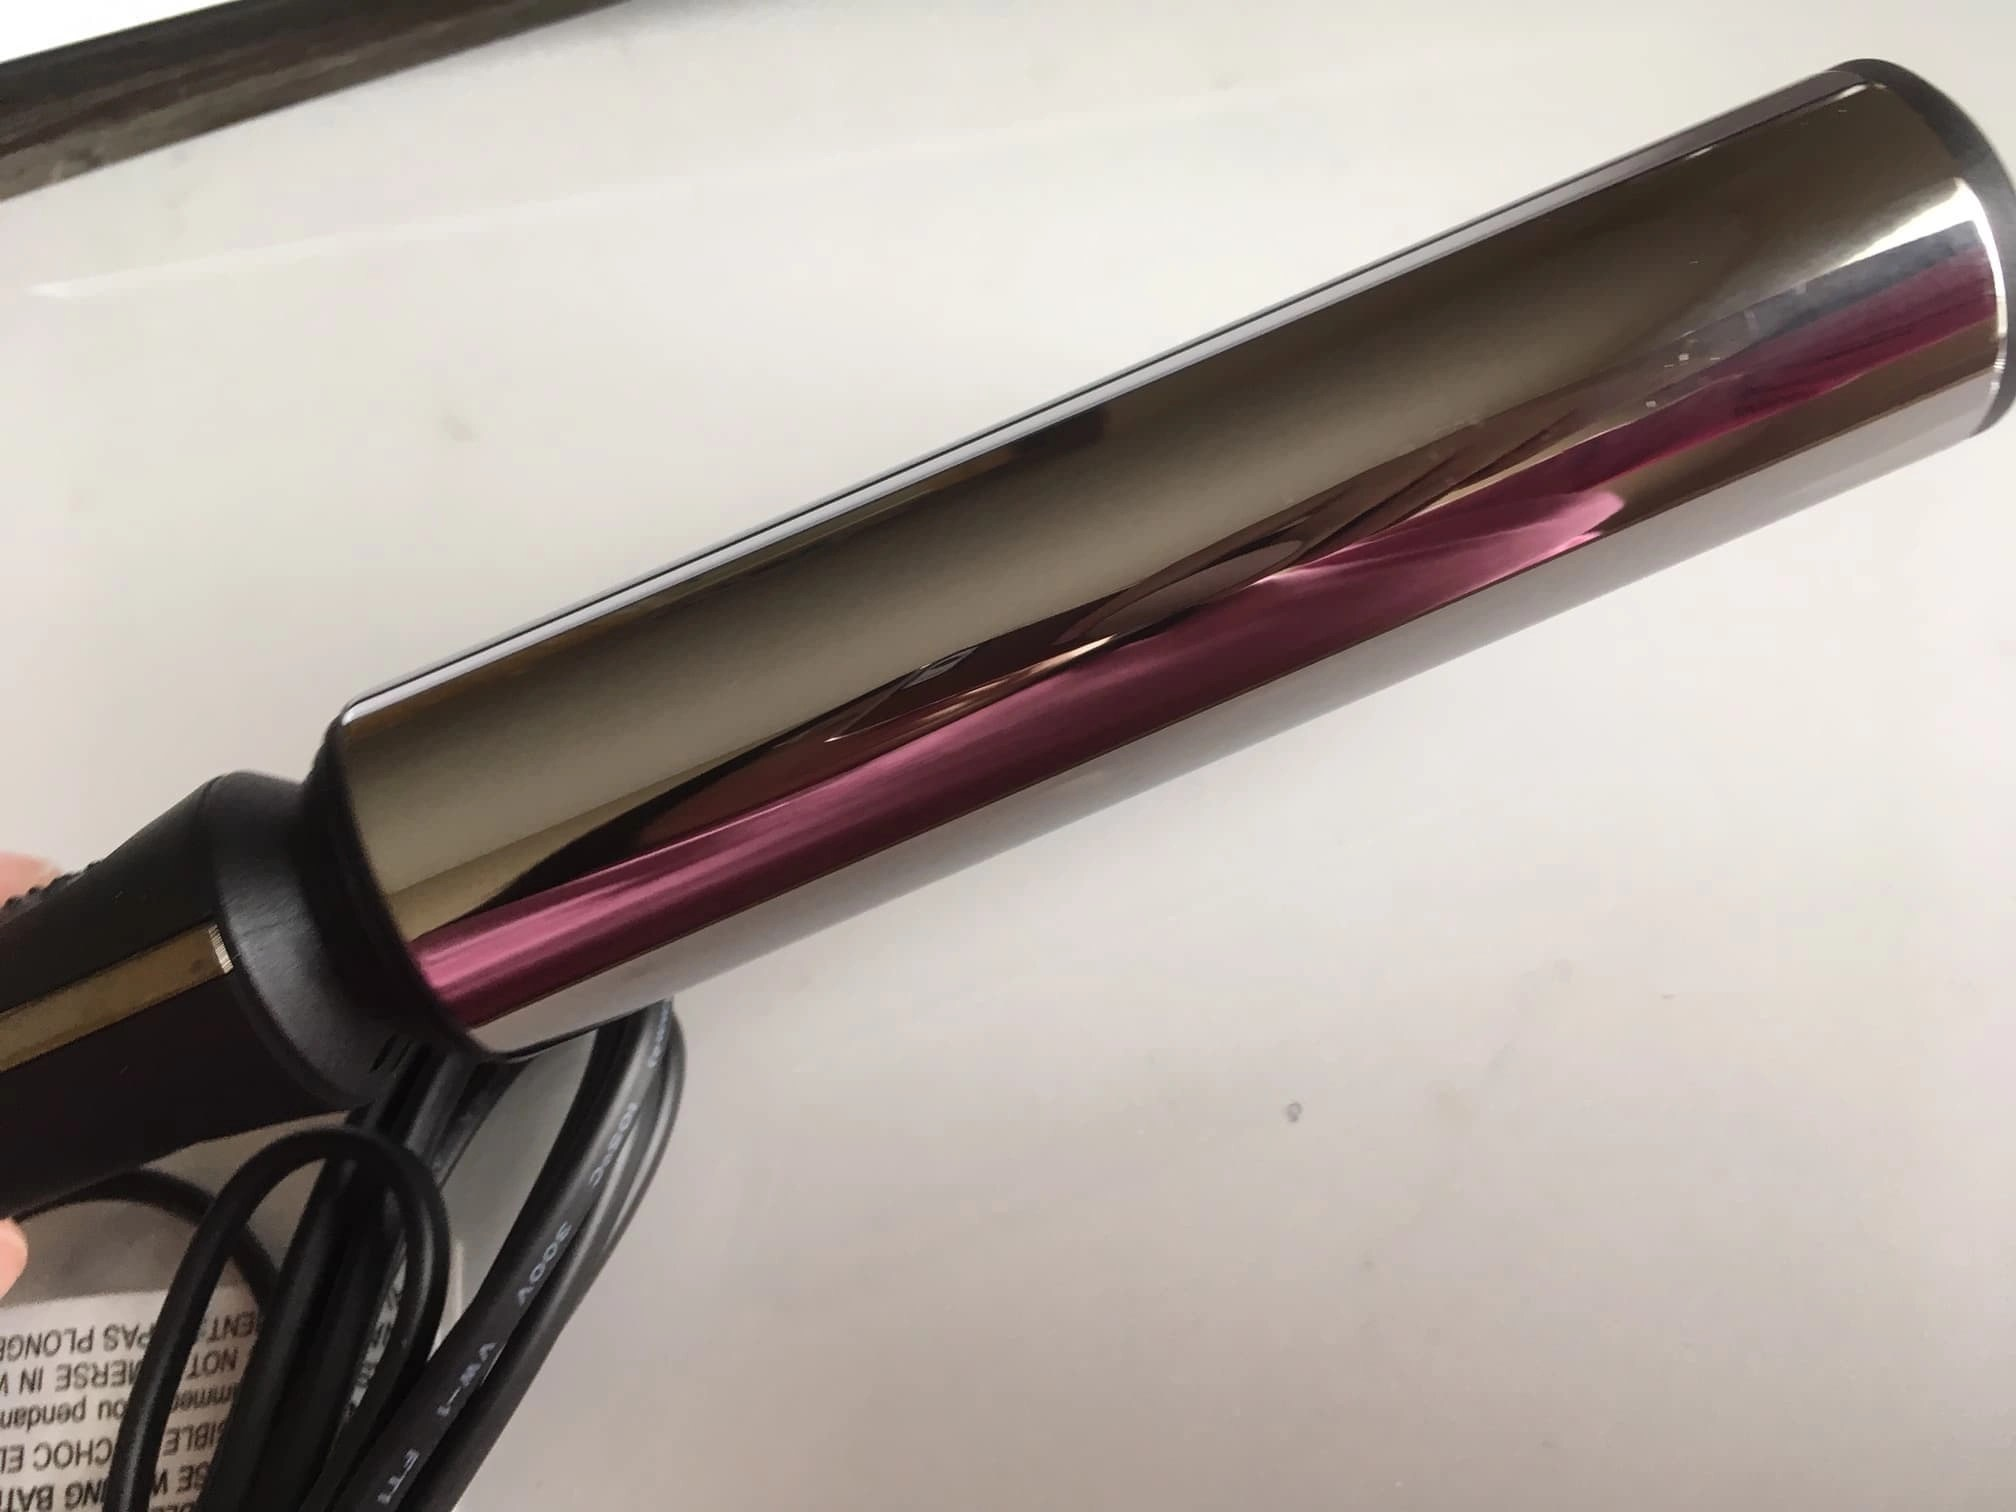 Sultra Curling Wand - wand photo